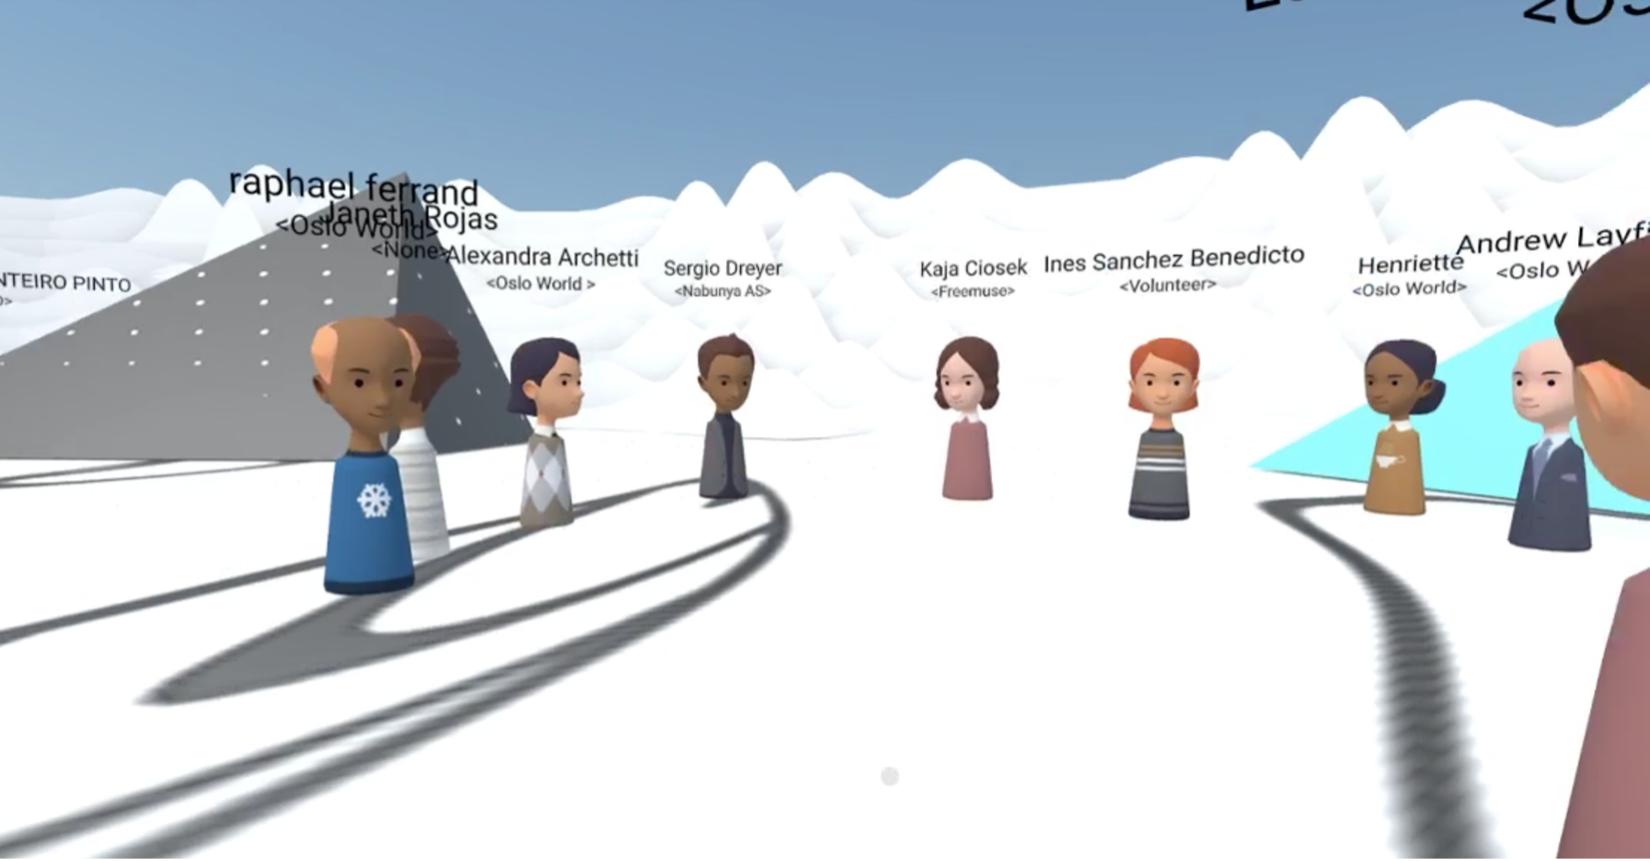 A group of avatars in 3D space in a circle discussing something.